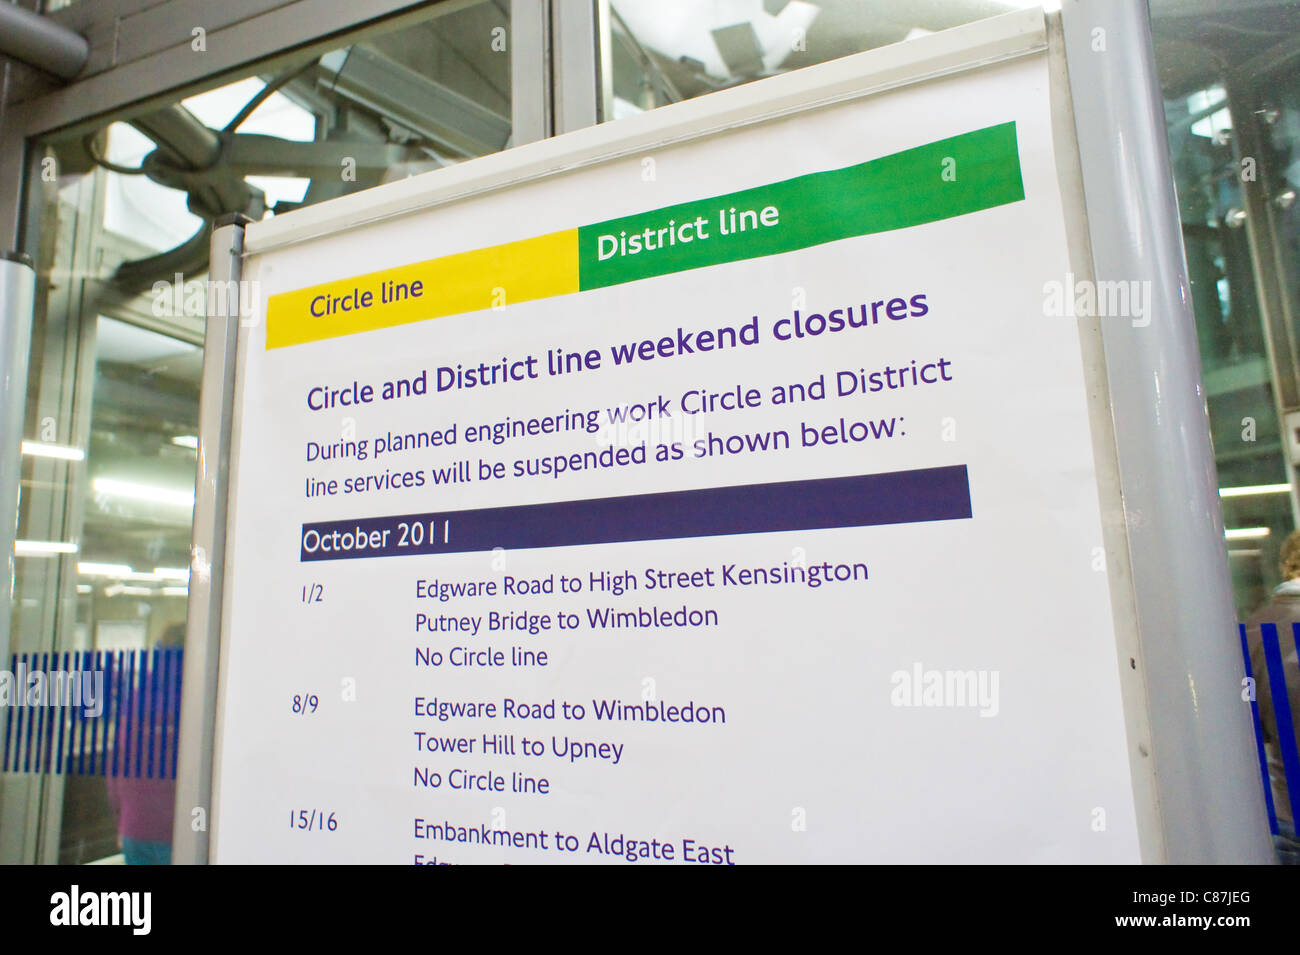 Details of planned weekend closures on the London underground, October 2011 - Stock Image